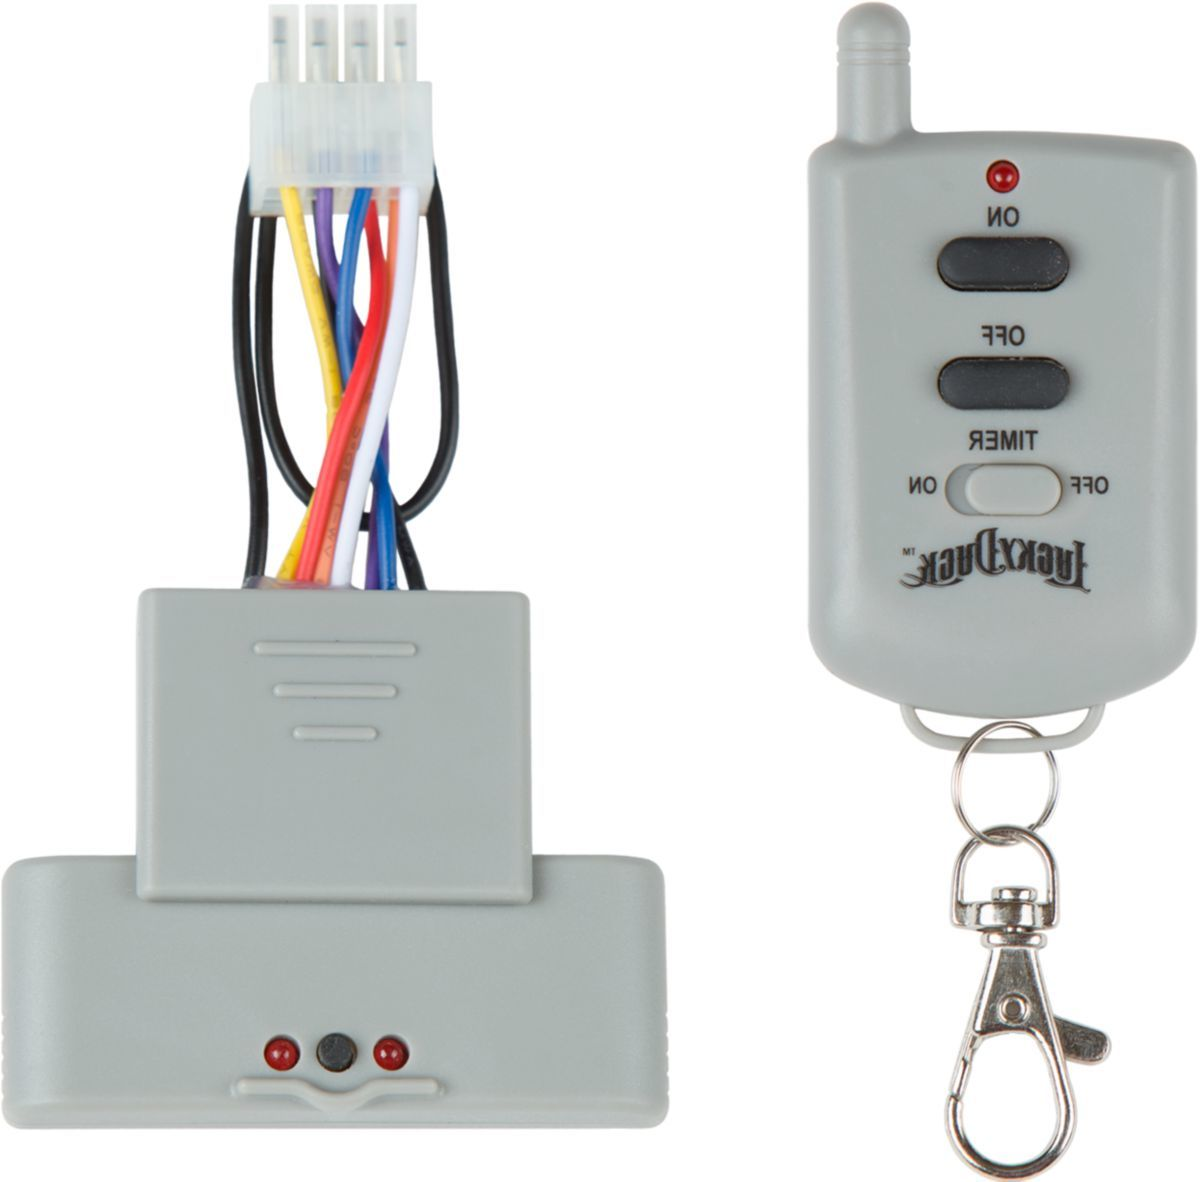 Lucky Duck HD Remote Kit